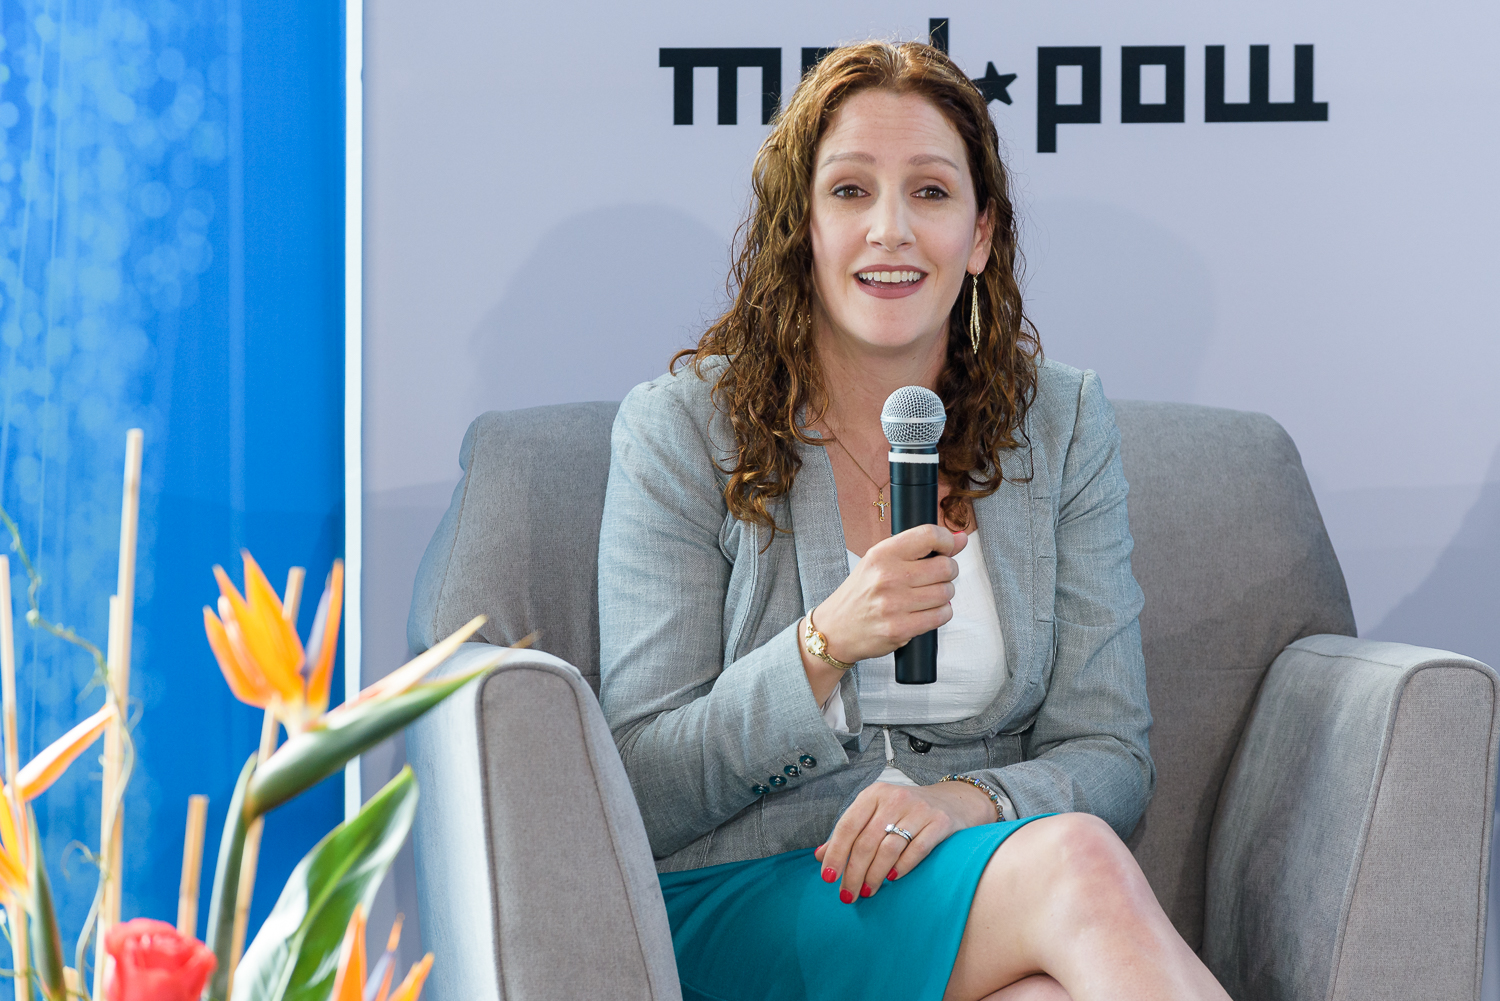 Amy Heymans, Founder and Chief Experience Officer of Mad*Pow